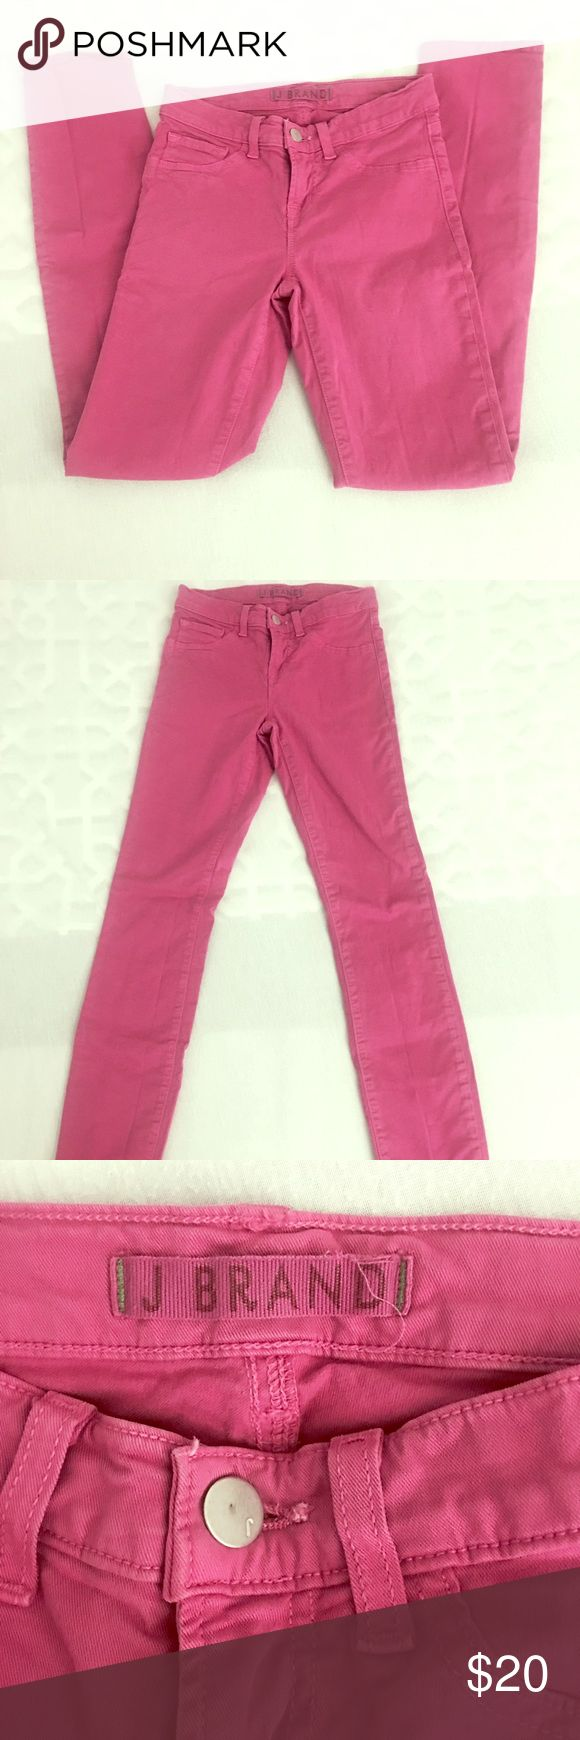 J Brand pink skinny jeans - size 24 J Brand pink / purple skinny jeans - long - no signs of wear J Brand Jeans Skinny